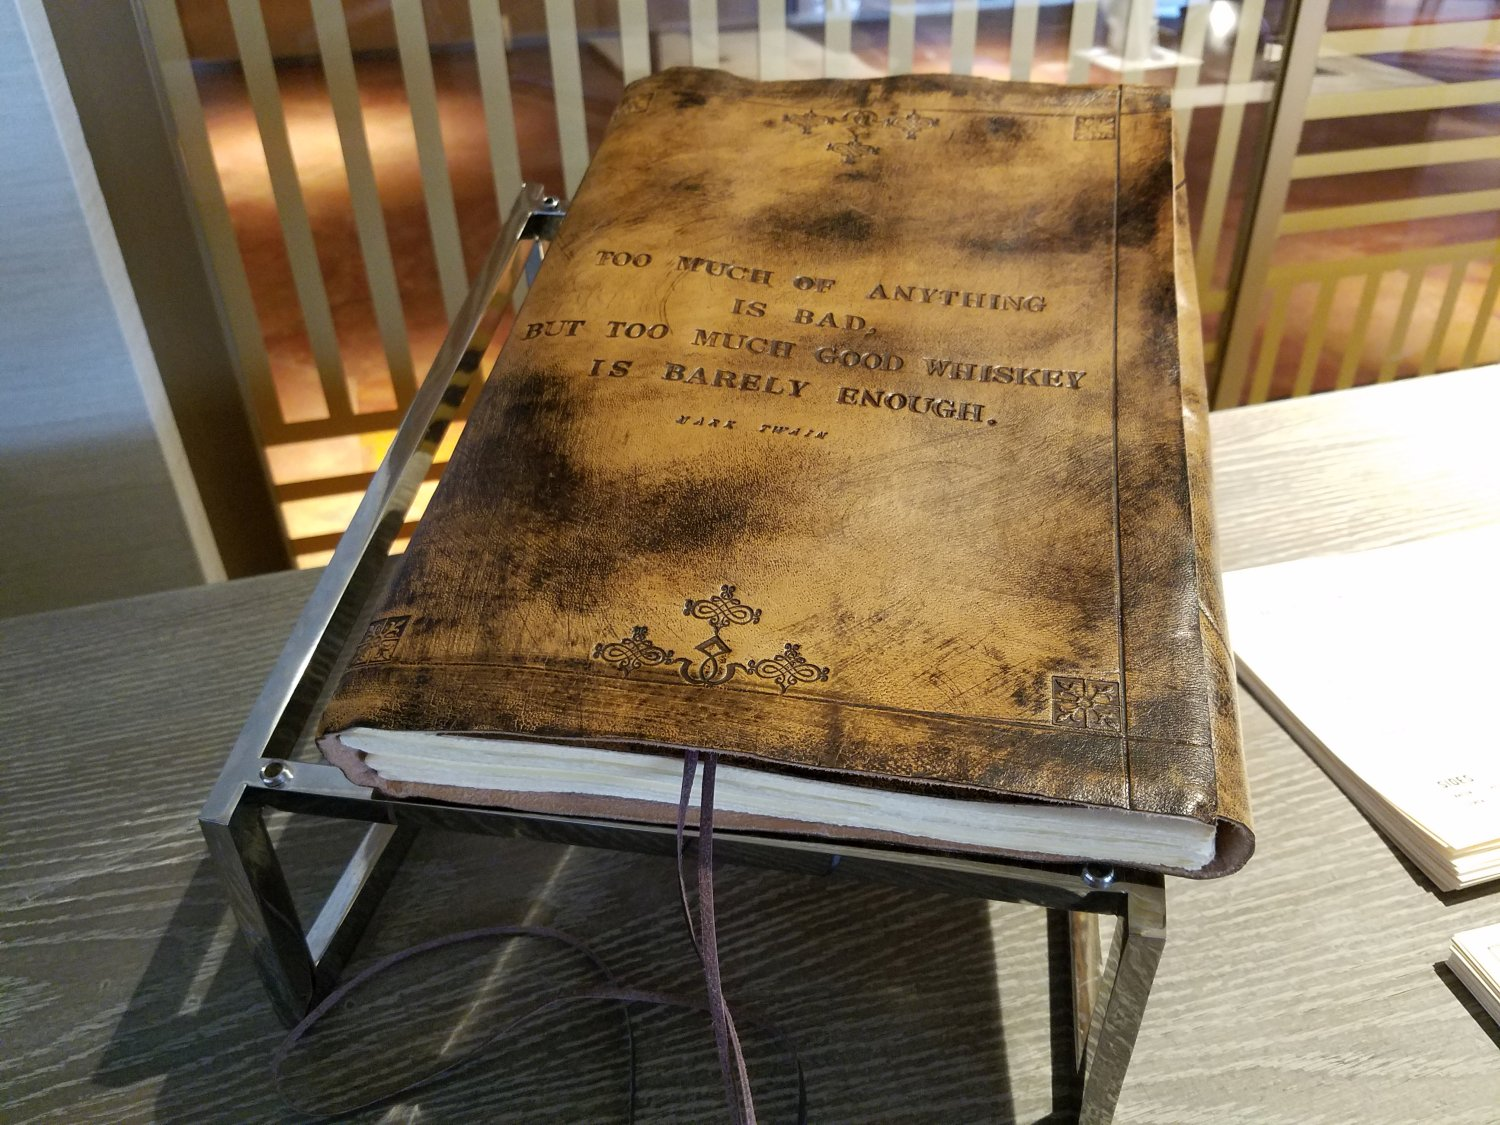 The 'Bourbon Baron Program' log book. Join the program and keep track of your whiskey consumption in this book.